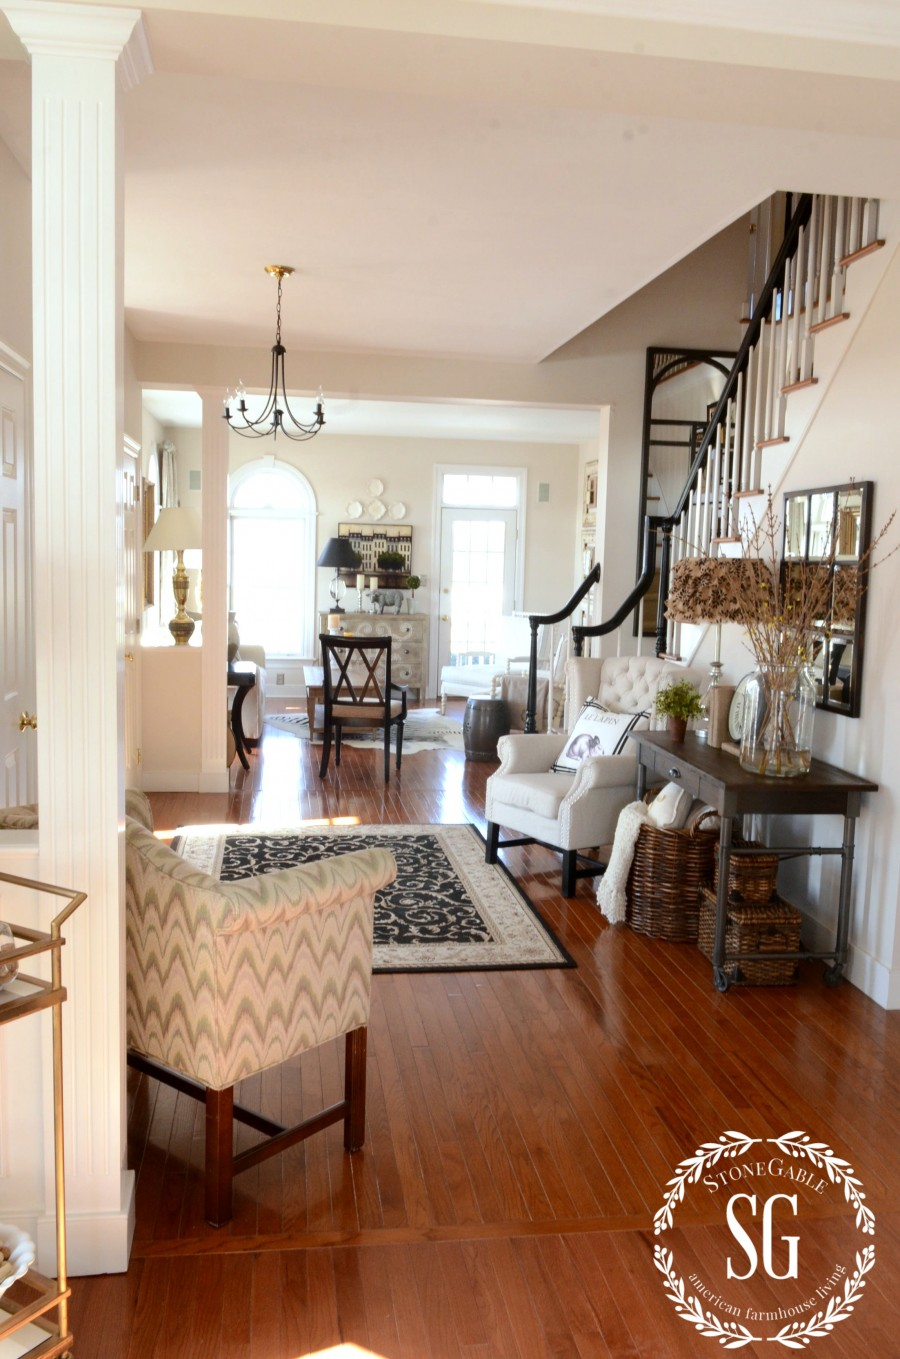 Is Foyer A Room : Adding an upholstered chair to the foyer breaking